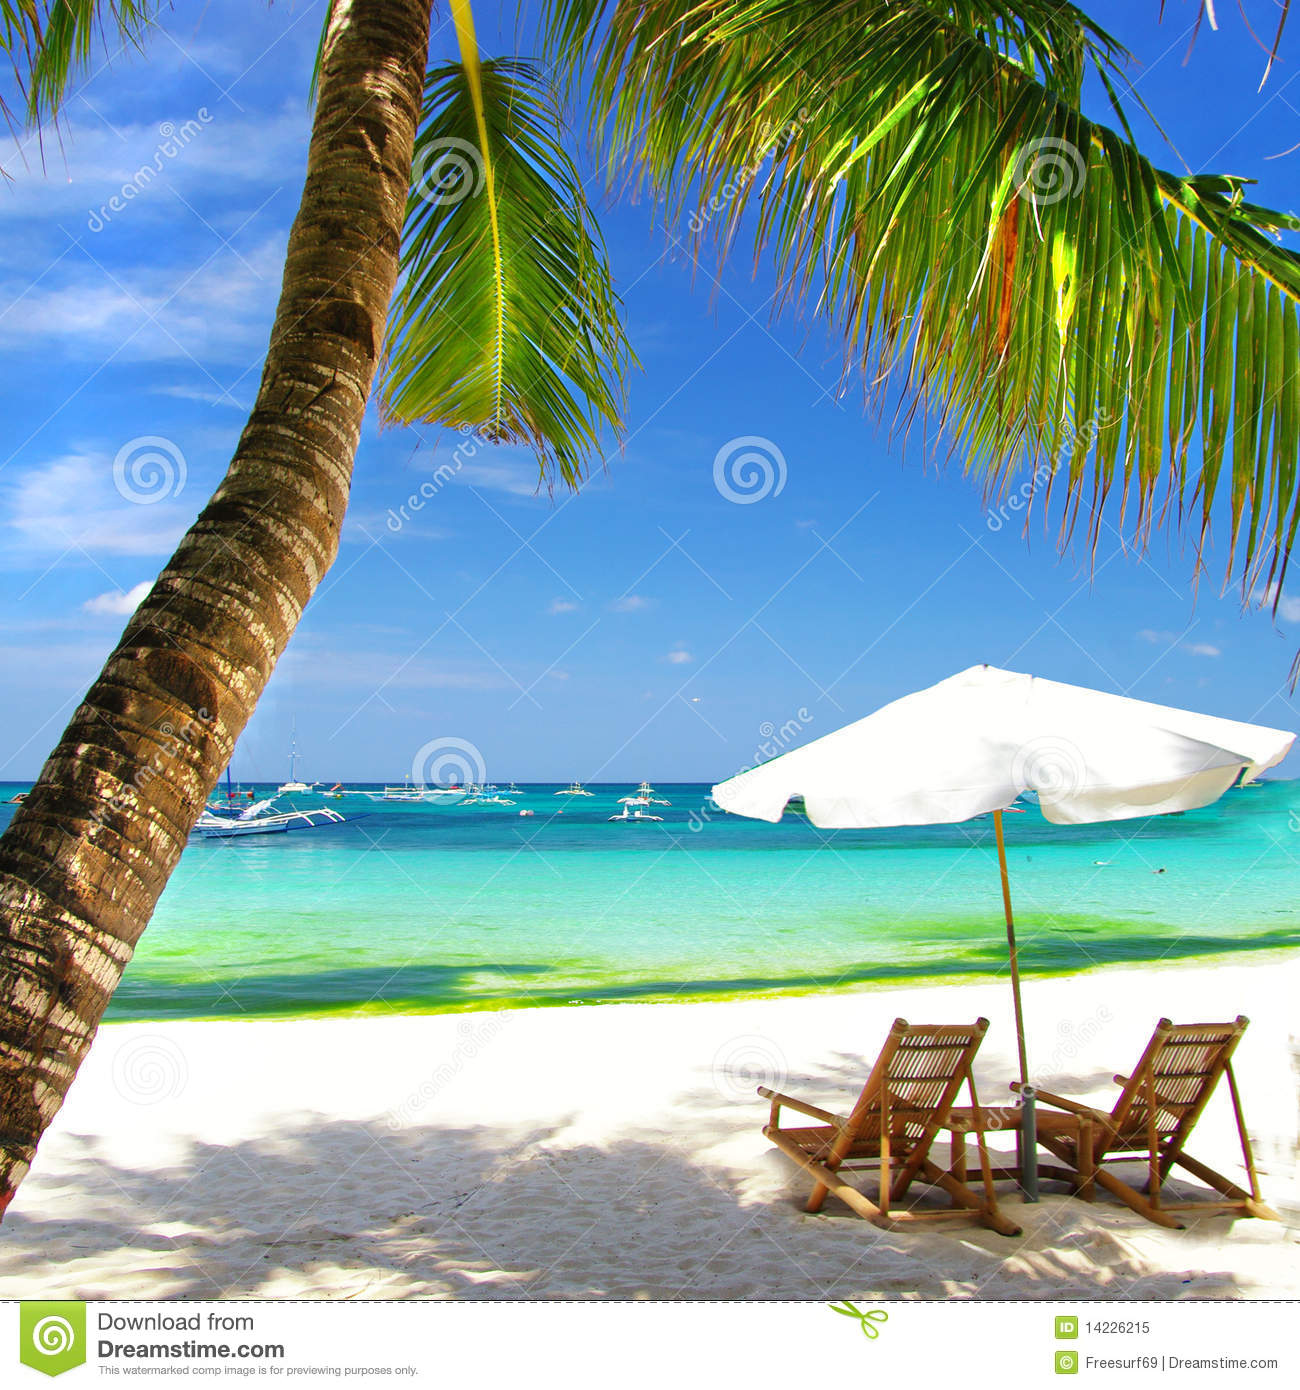 Tropical vacations stock image Image of hotel scenery